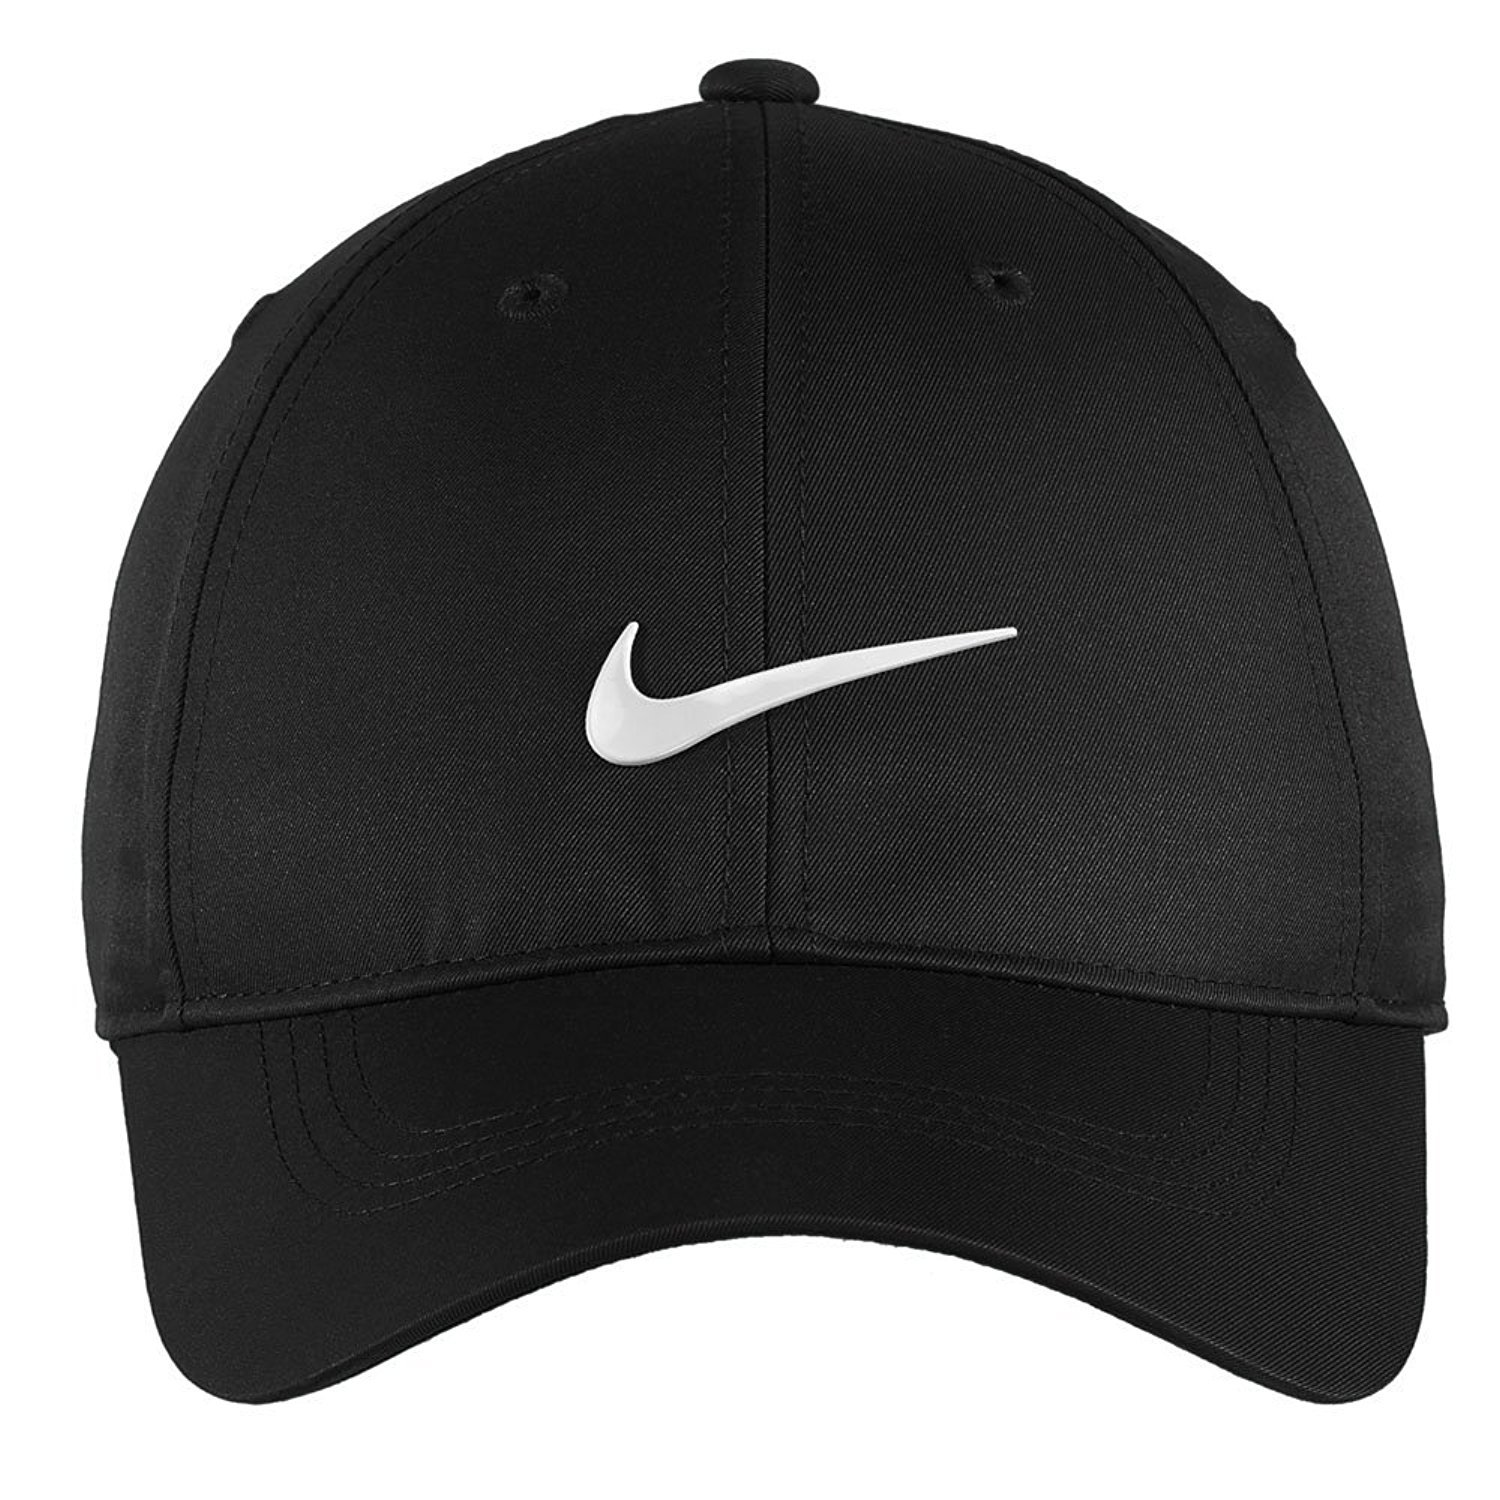 Amazon.com  Nike Authentic Dri-FIT Low Profile Swoosh Front Adjustable Cap  - Black  Sports   Outdoors 741fd99a517